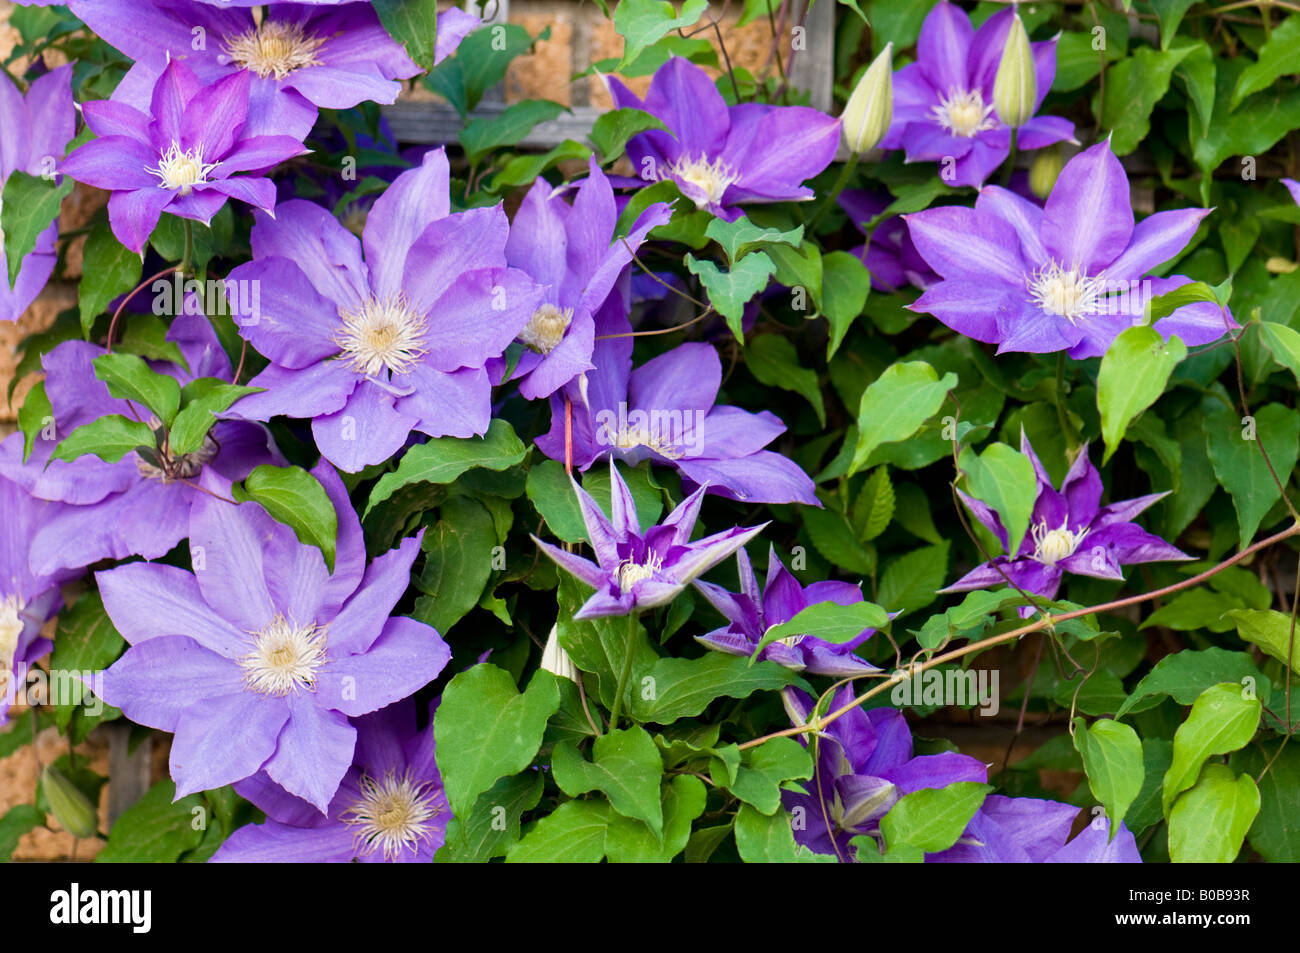 a purple clematis vine in full bloom climbs a trellis in a flower garden oklahoma usa